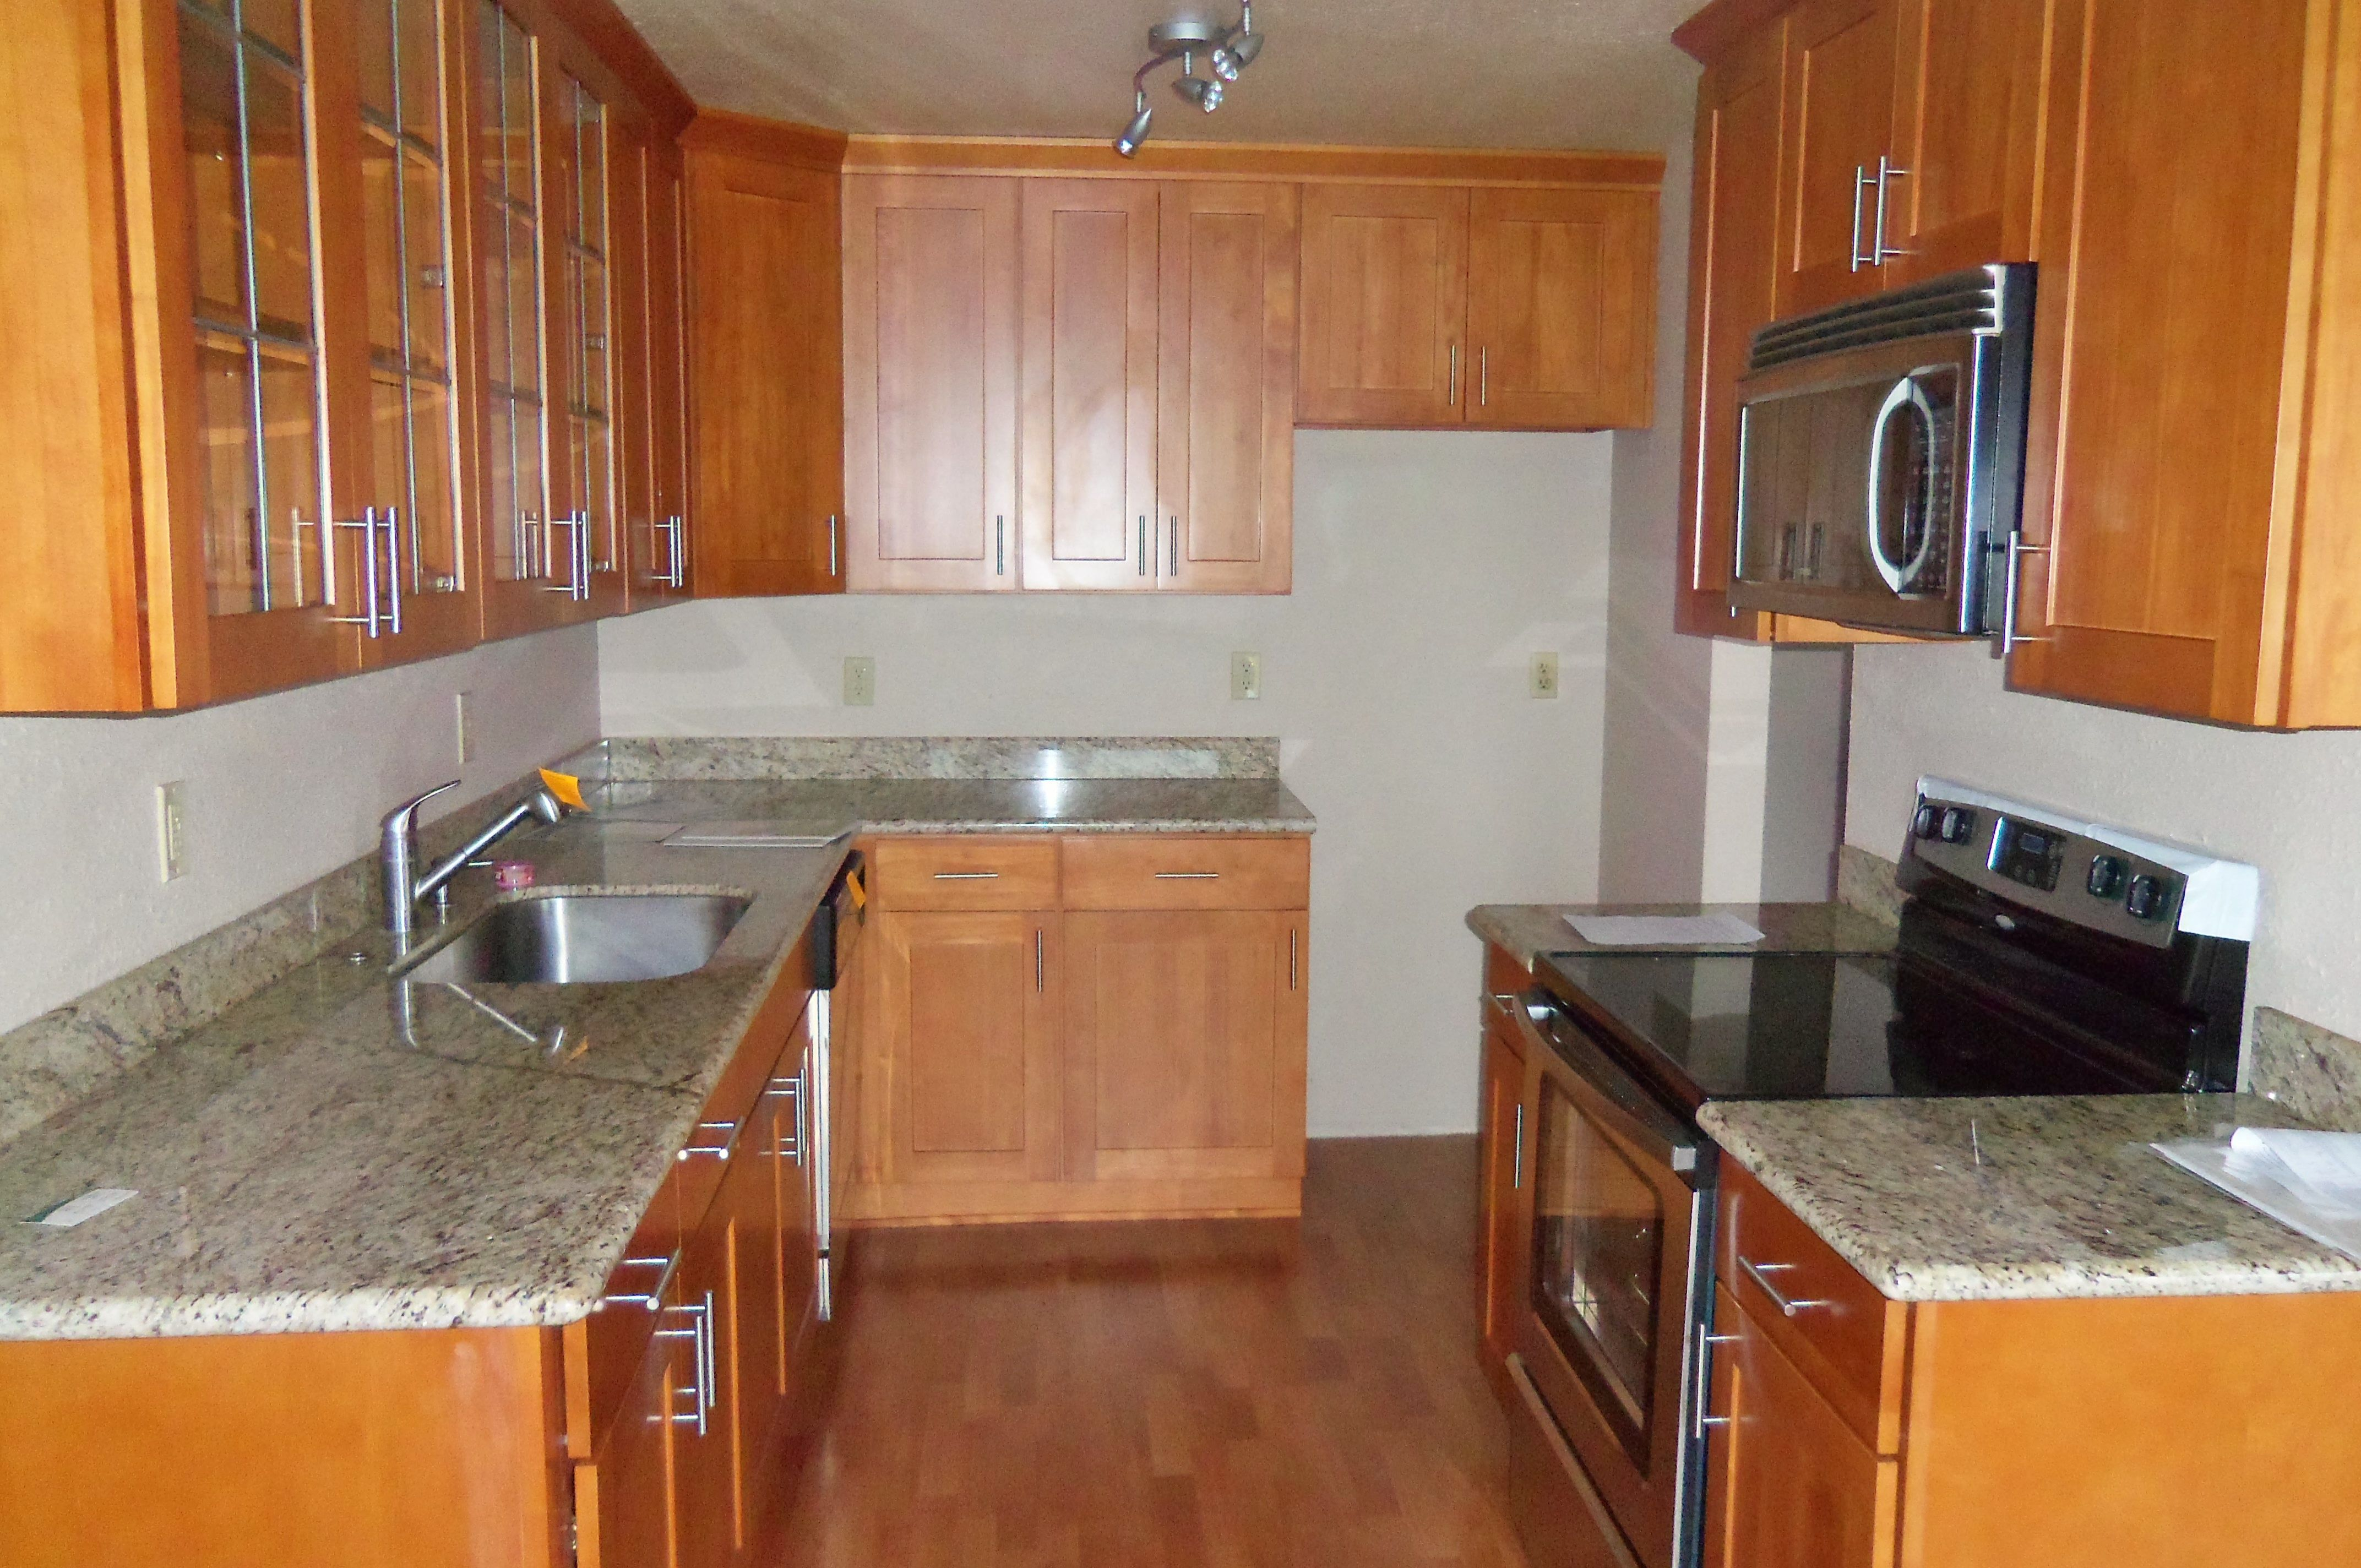 Beautiful Kitchen With Granite Countertops In A Condo On Redondo Beach.  This Bank Owned